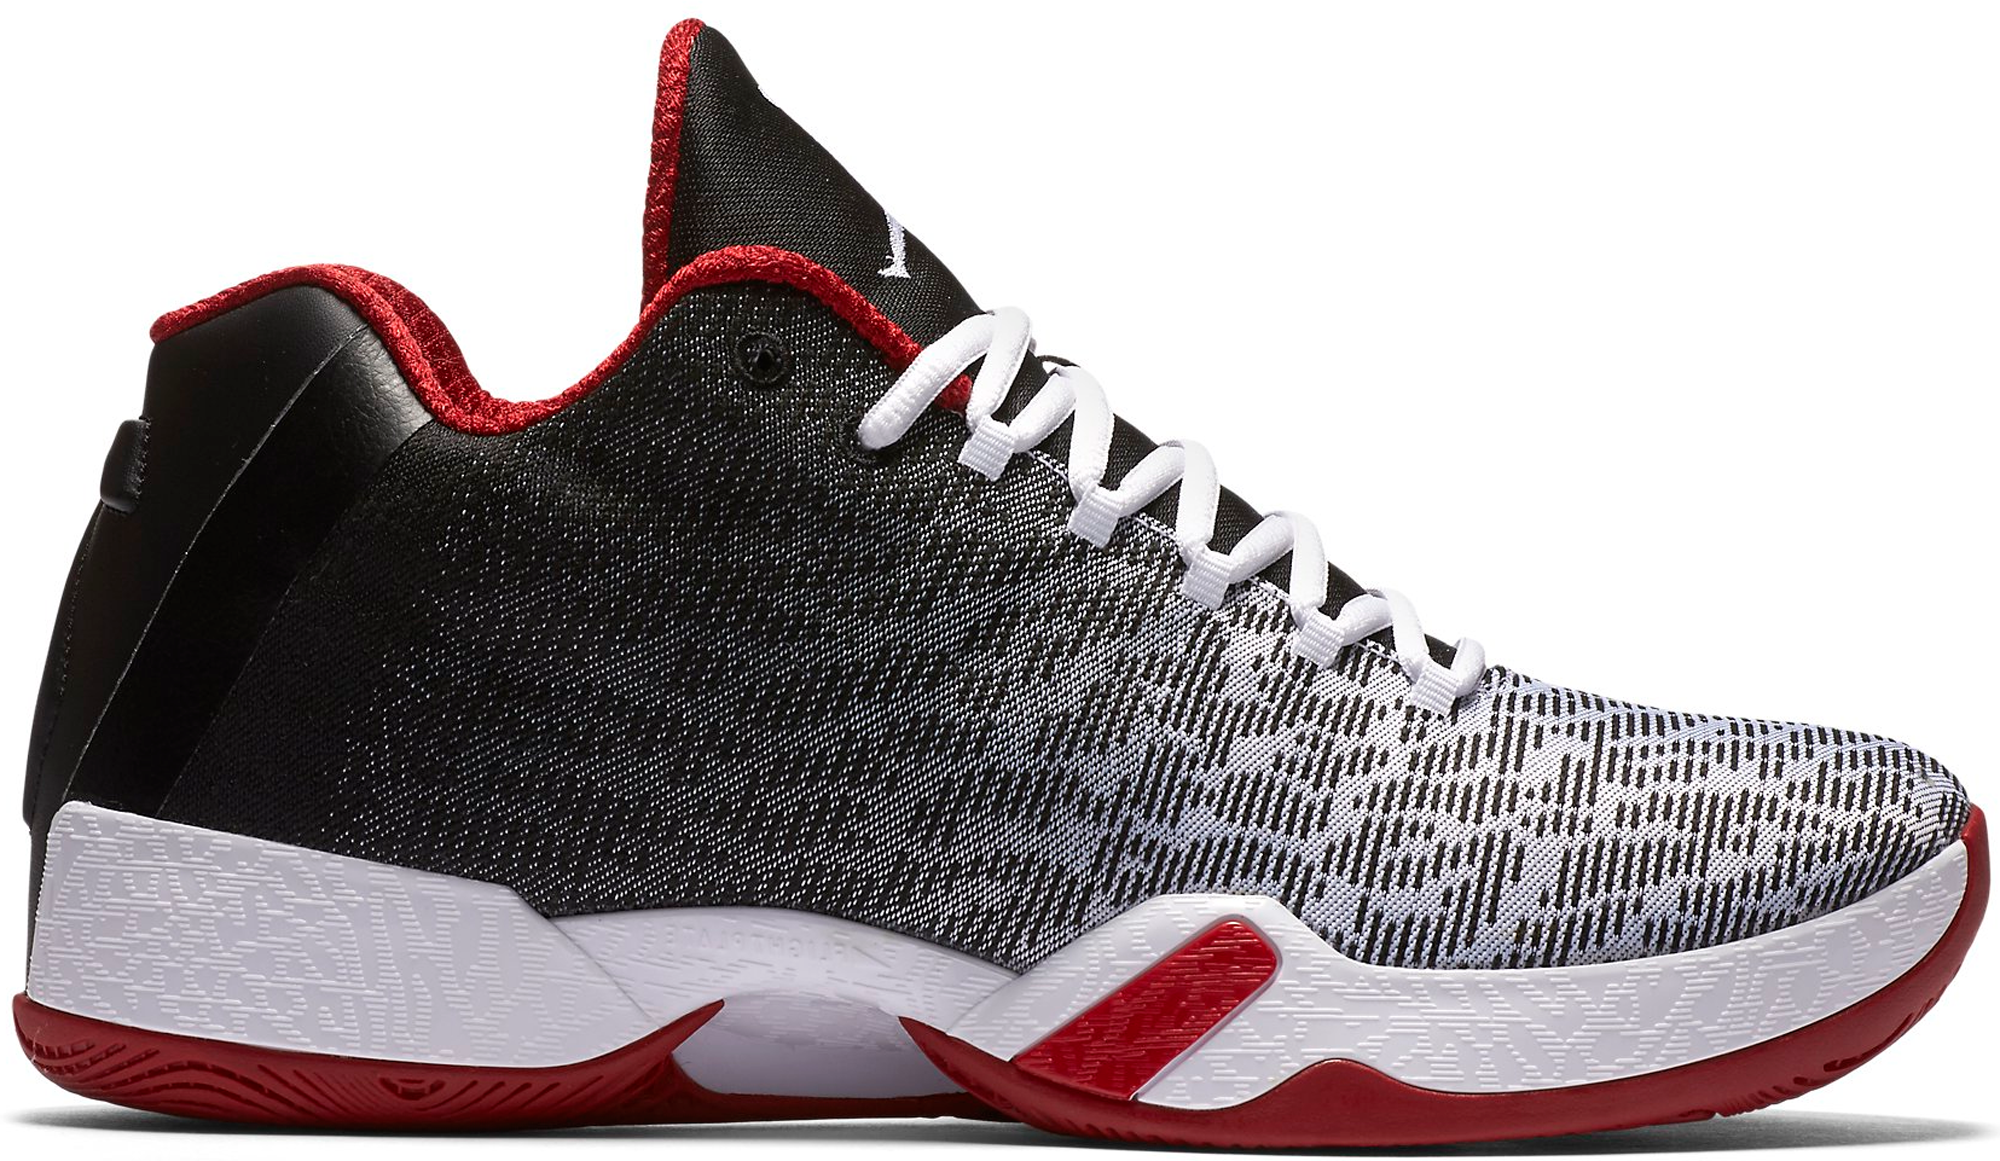 Jordan XX9 Low Free day shipping on millions of items. Products shown may  not be available in our. Since his accident 90b722392b